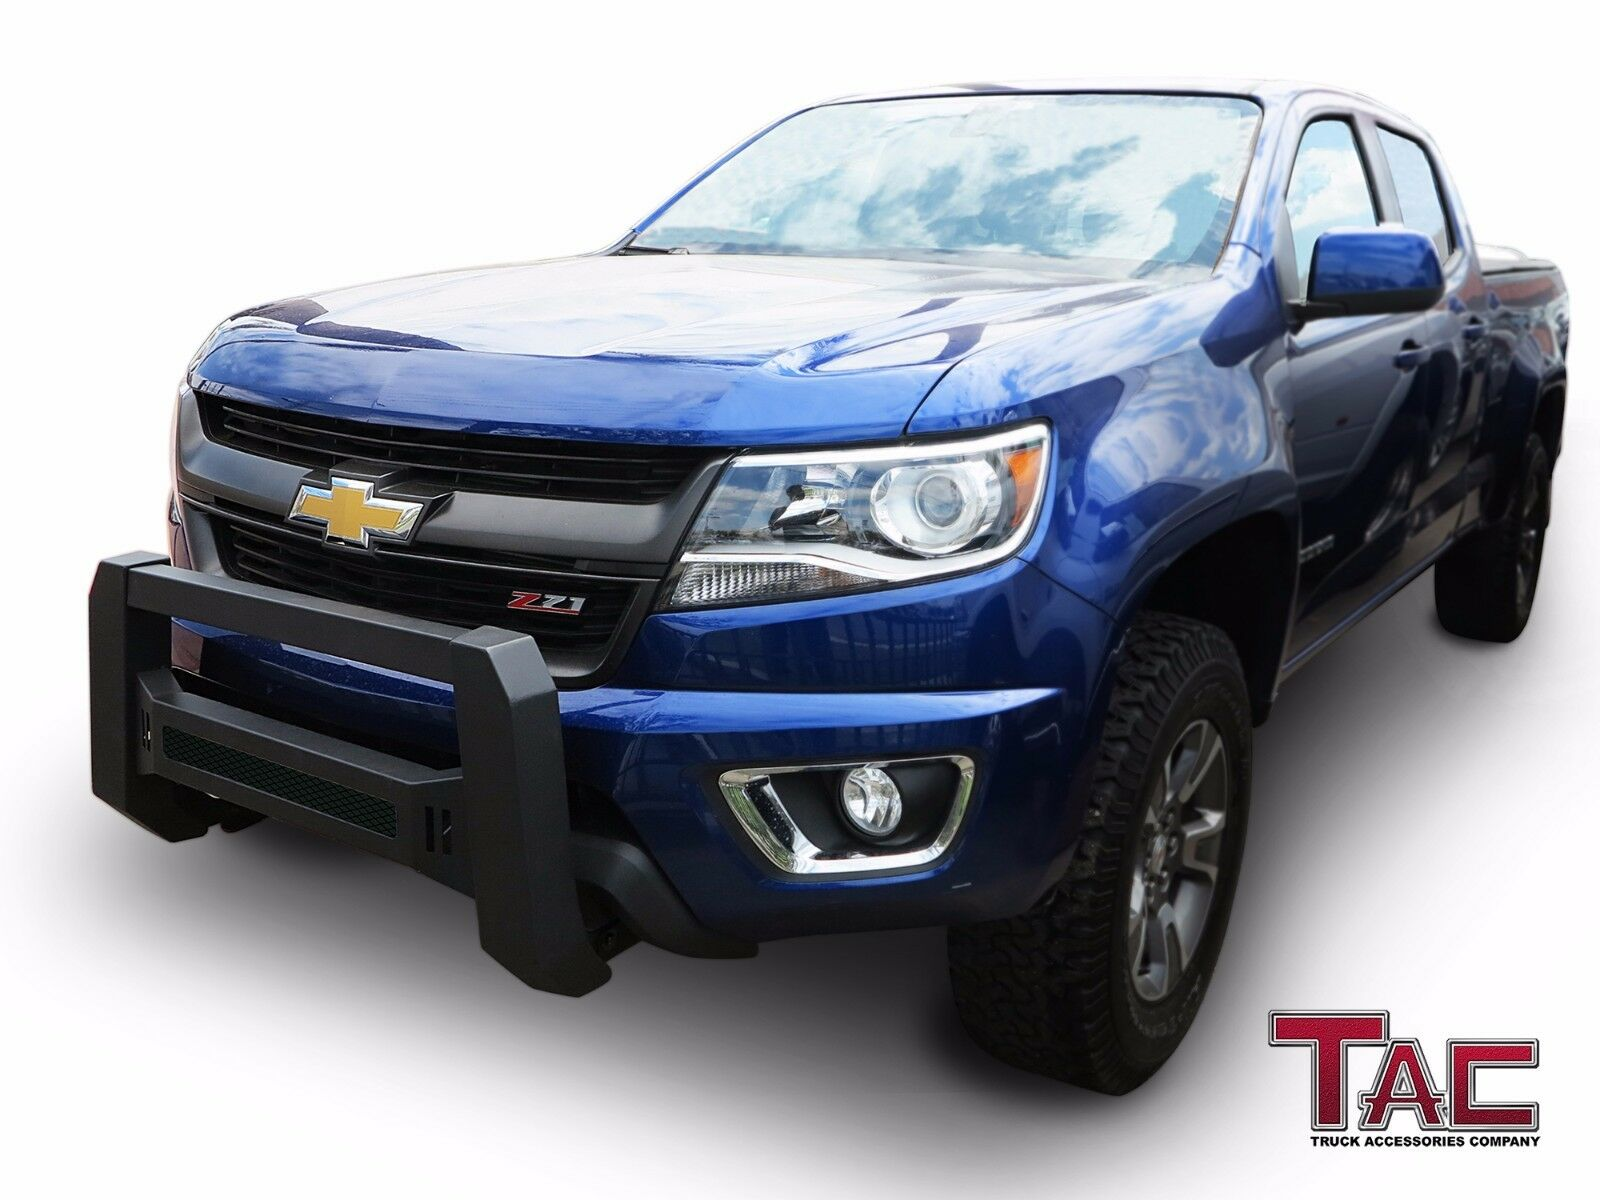 Details about Mesh Modular Bull Bar for 2015-2019 Chevy Colorado/GMC Canyon  Brush Grille Guard